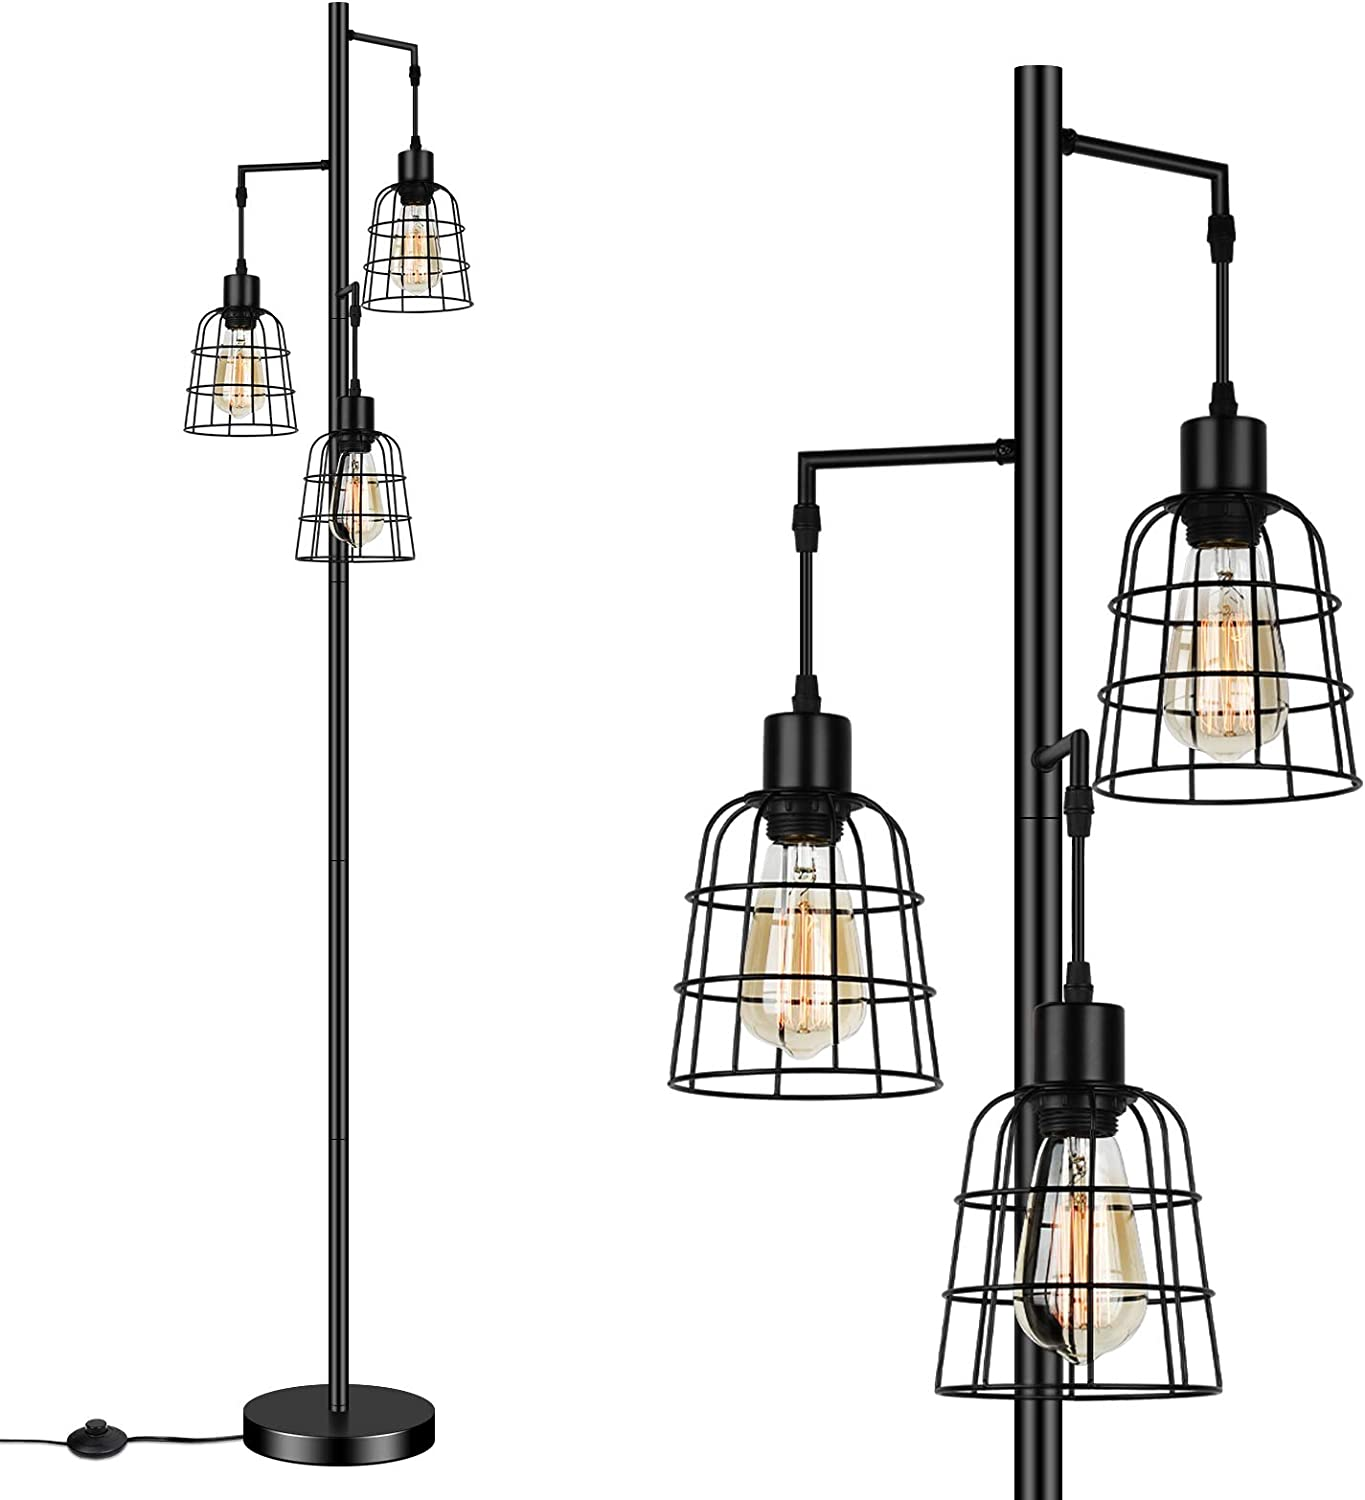 Industrial 3-Light Tree Floor Lamp with Cup-Shaped Cages Farmhouse Rustic Tall Standing Lamp for Living Room Vintage Elegant Black Pole Light with Edison E26 Base Metal Shade for Bedroom Office Hotel